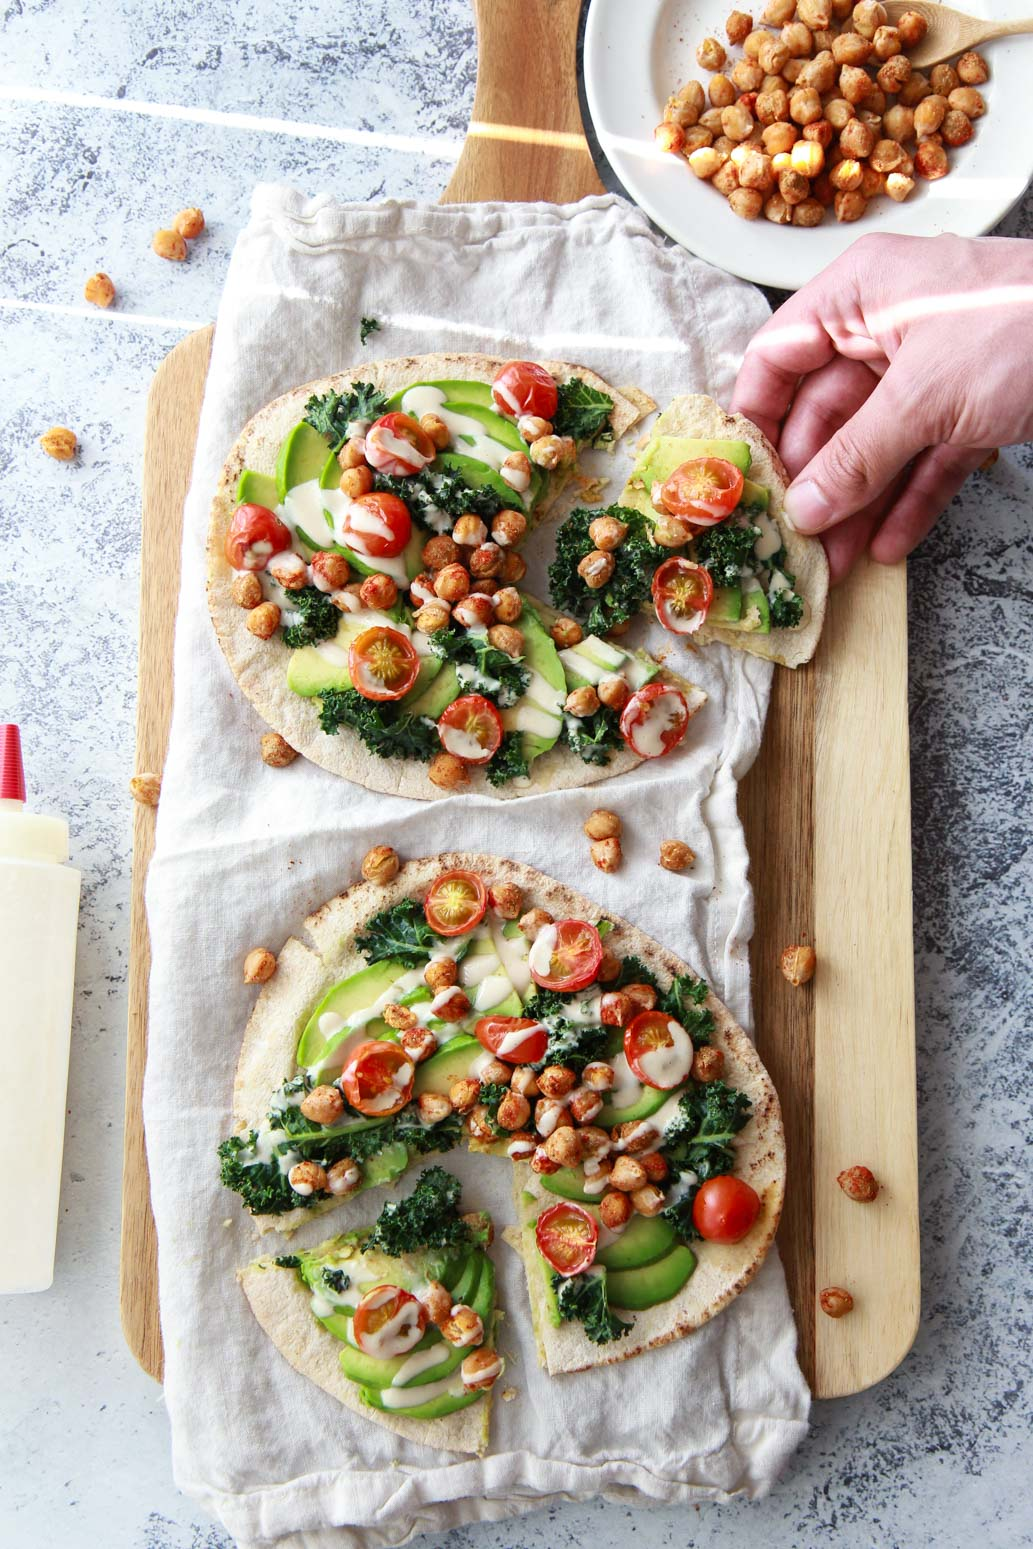 This avocado pita with spiced chickpeas and tahini puts a Mediterranean twist on avocado toast. This vegan recipe is topped with burst cherry tomatoes and massaged kale.